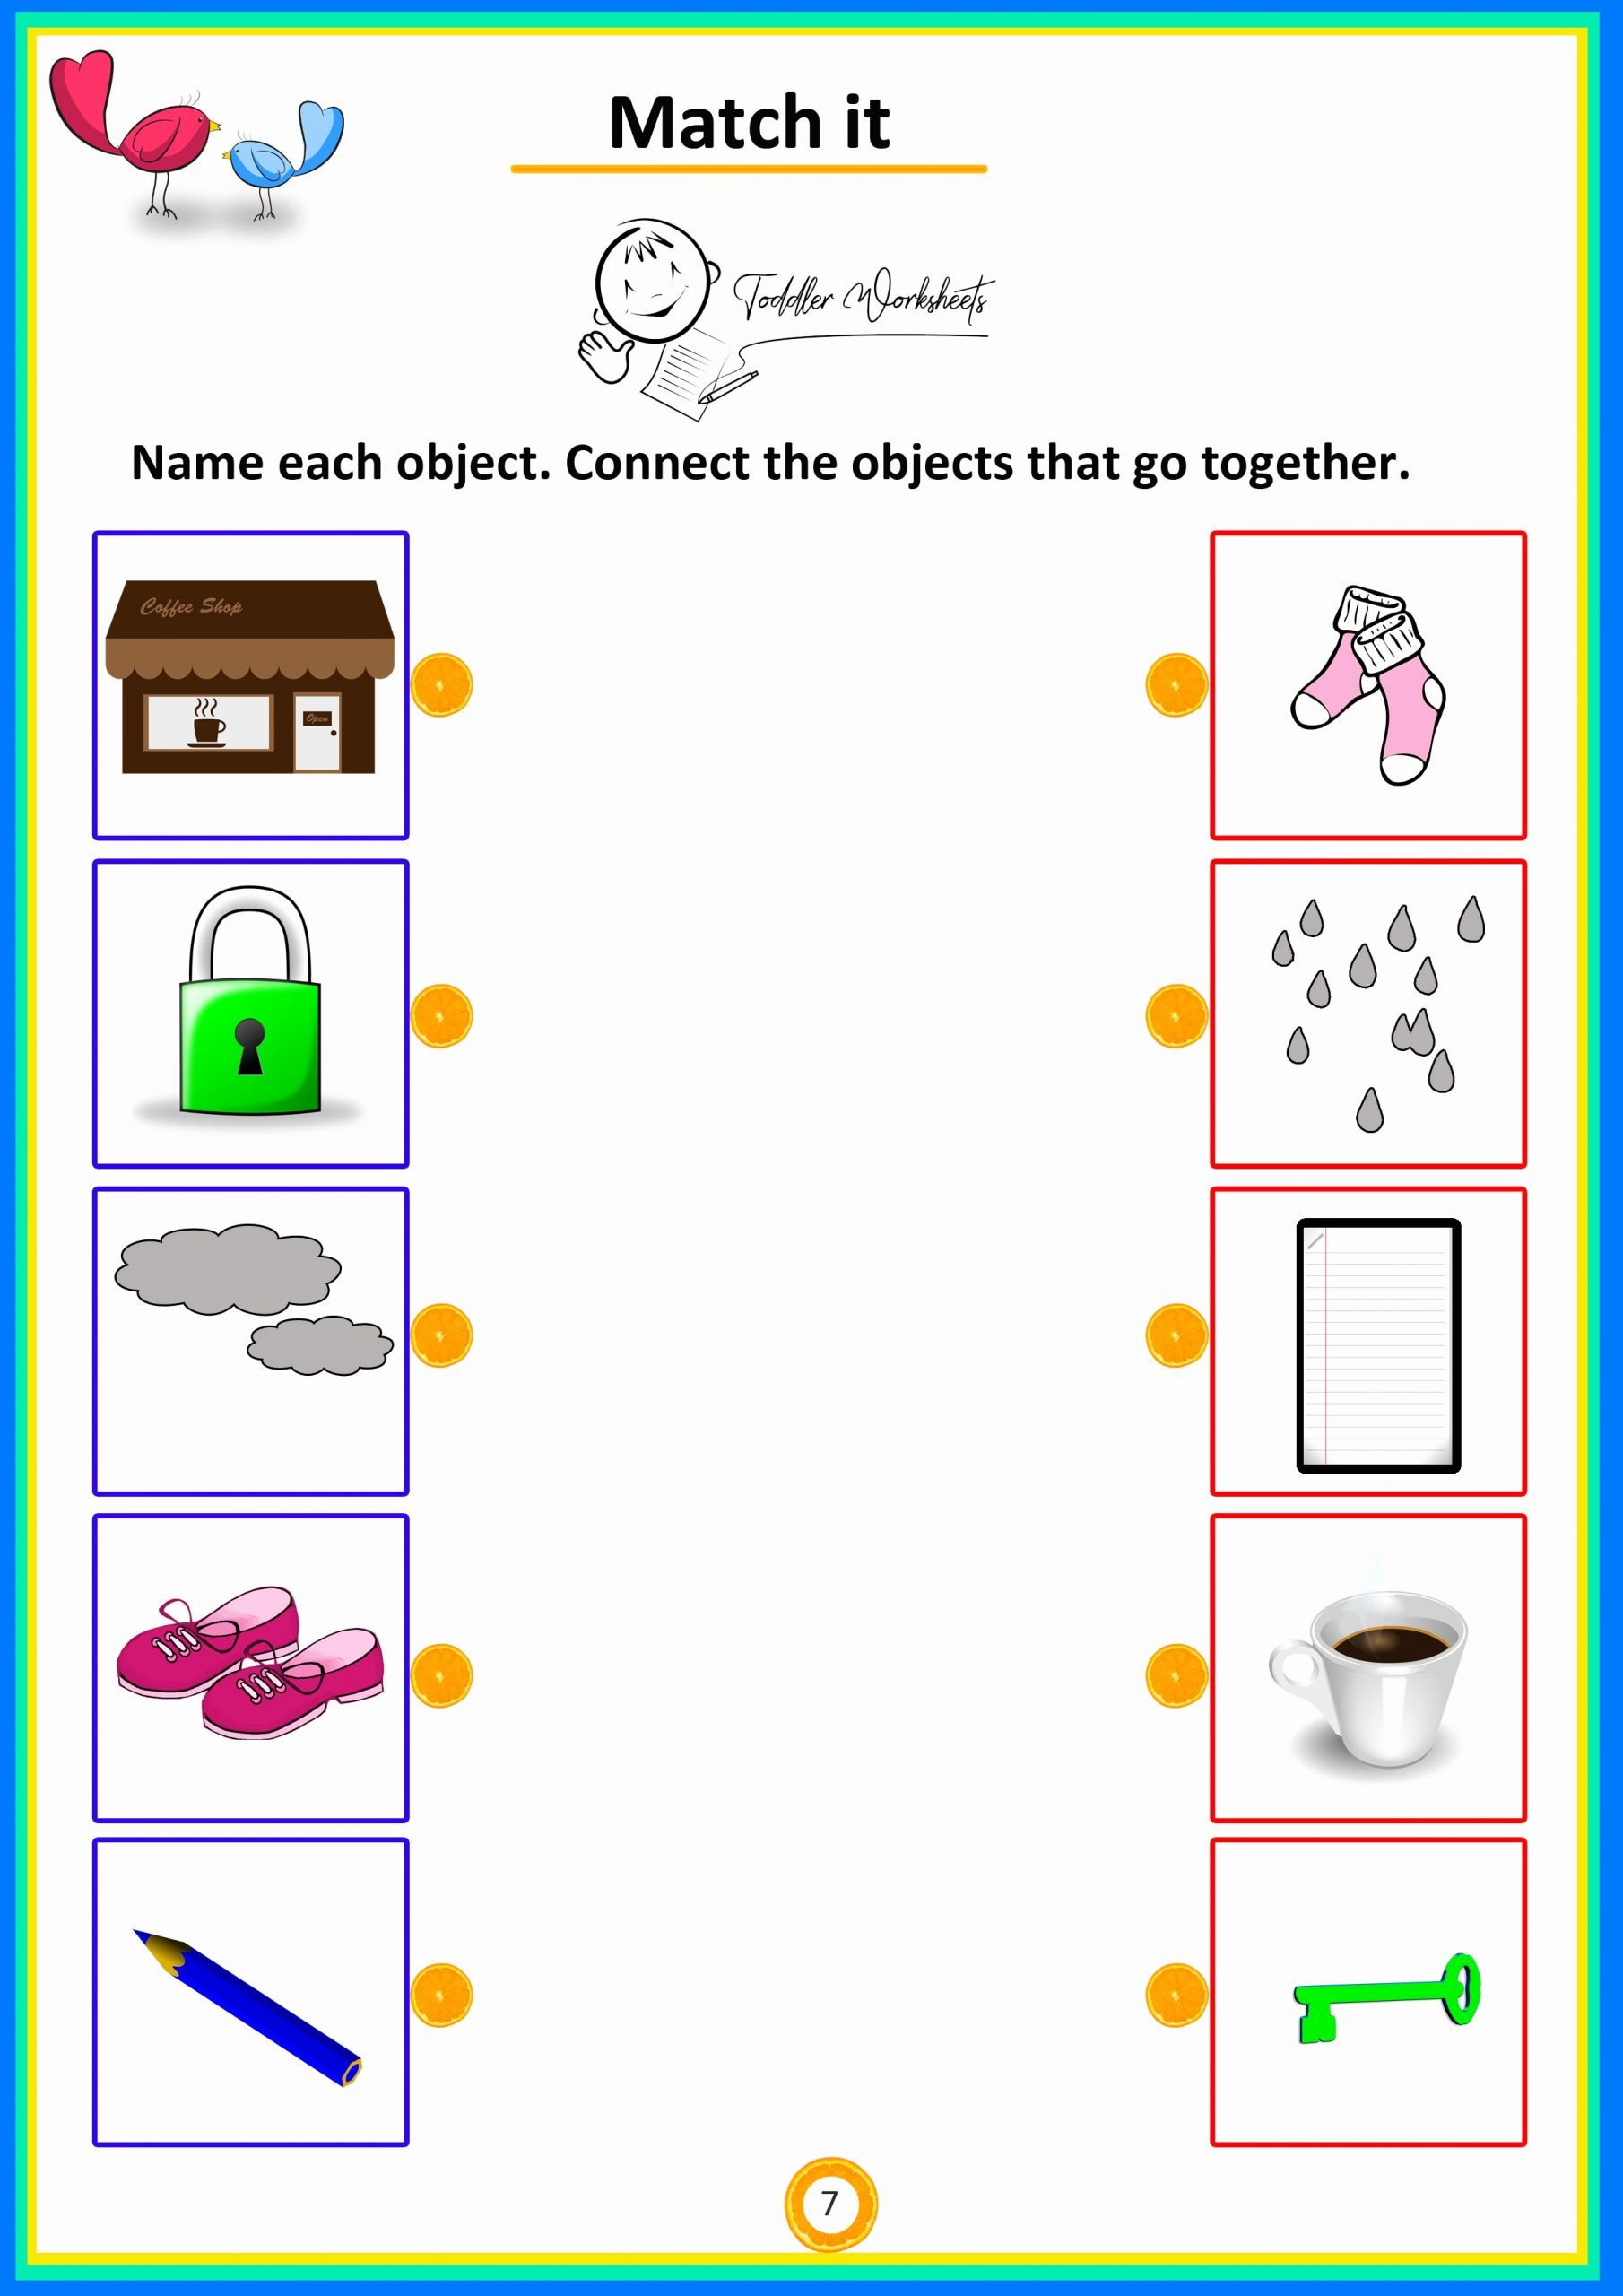 Matching Objects Worksheets for Preschoolers Lovely Match It 7 toddler Worksheets